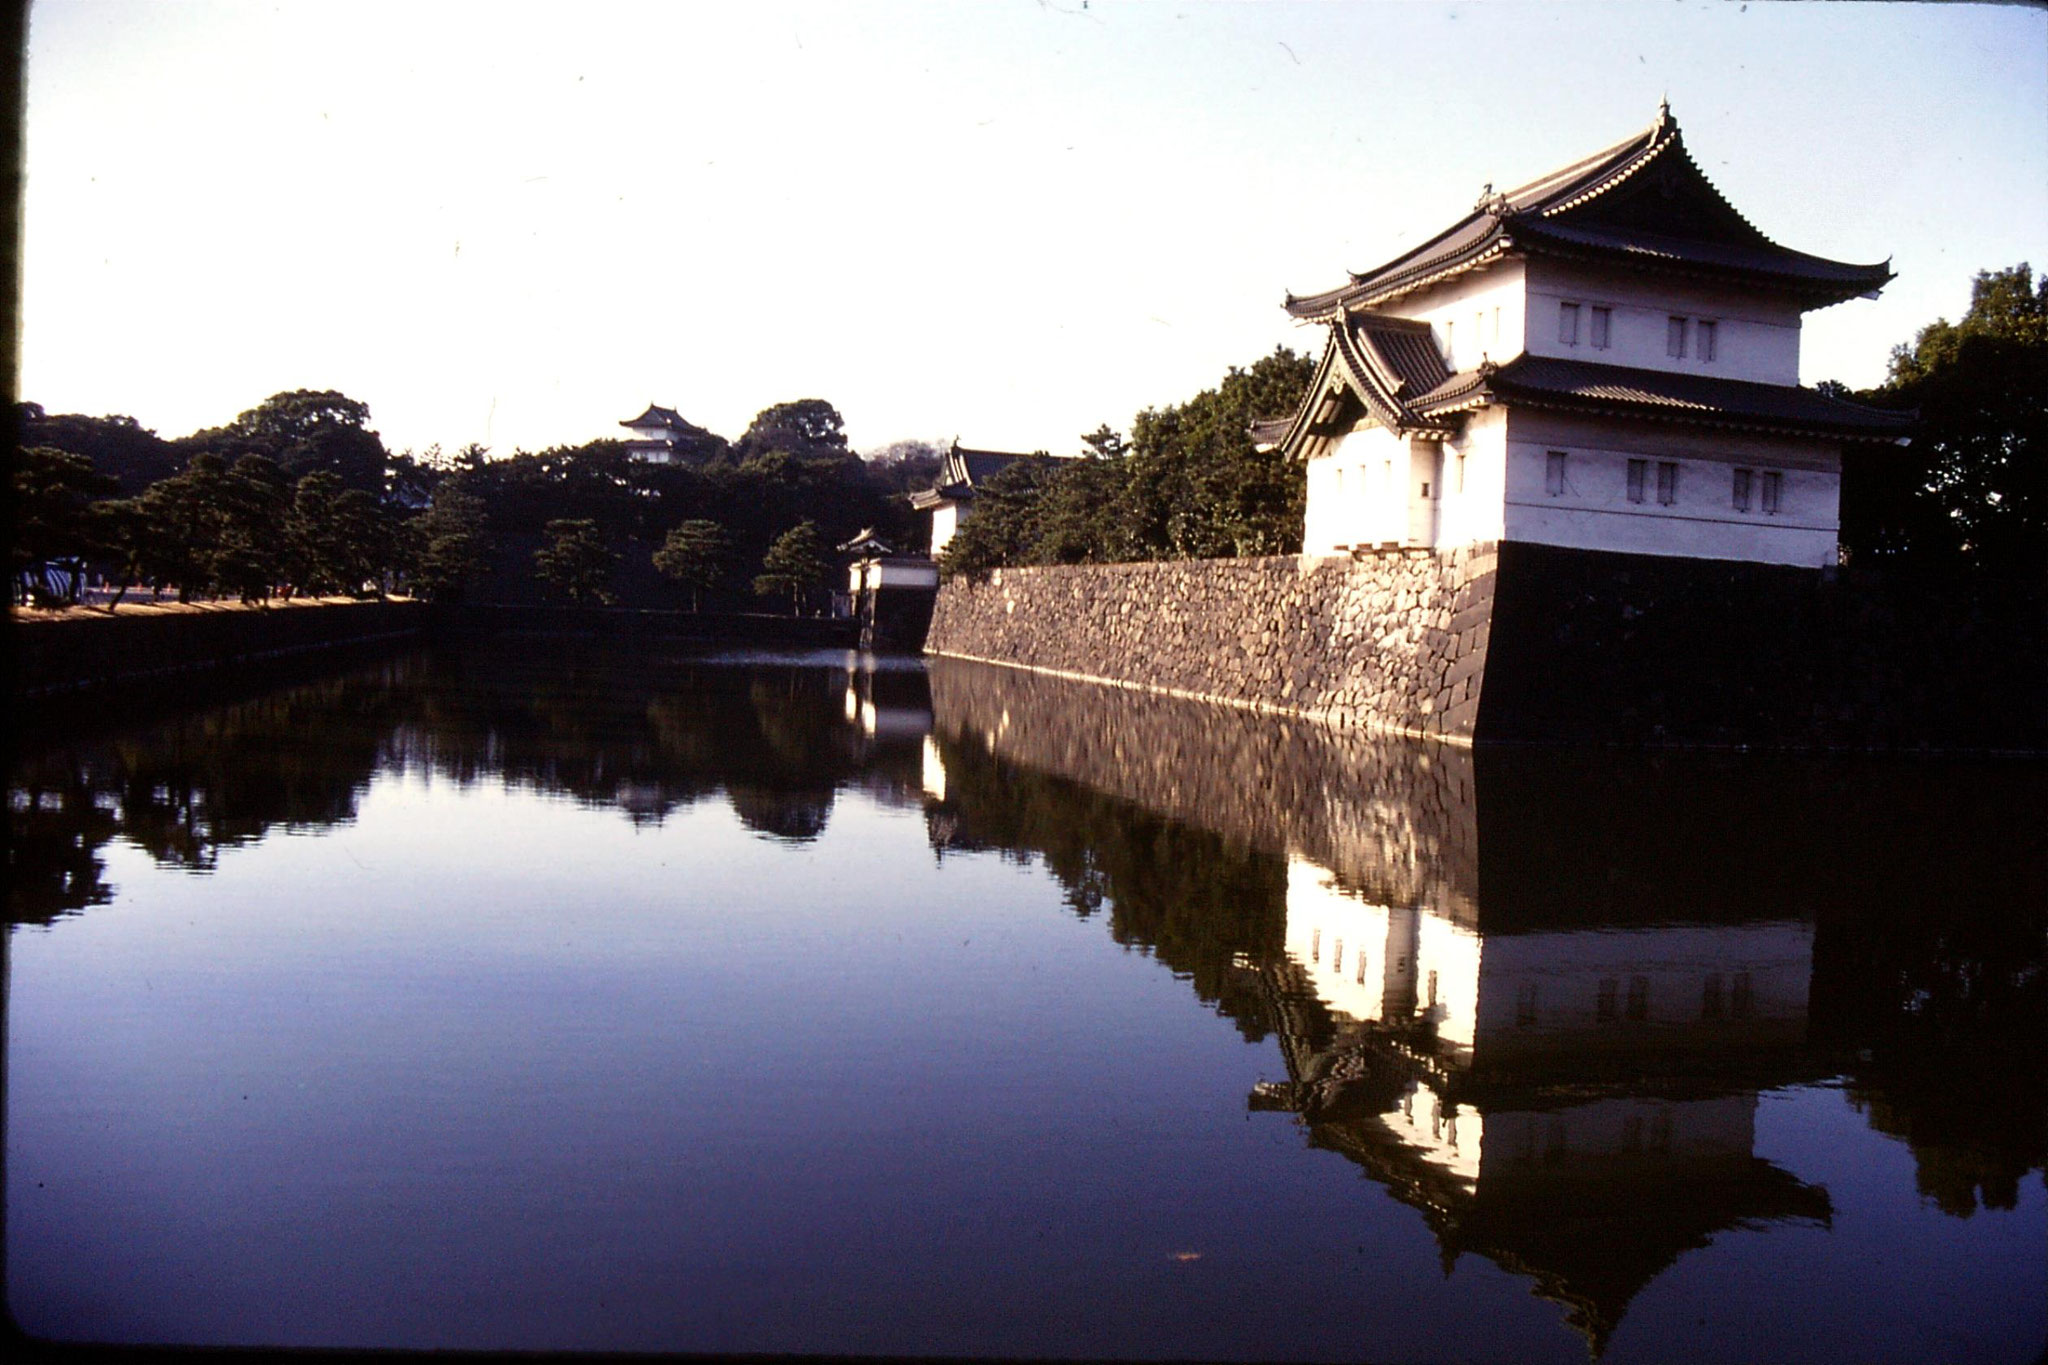 2/1/1989: 33: Imperial Palace